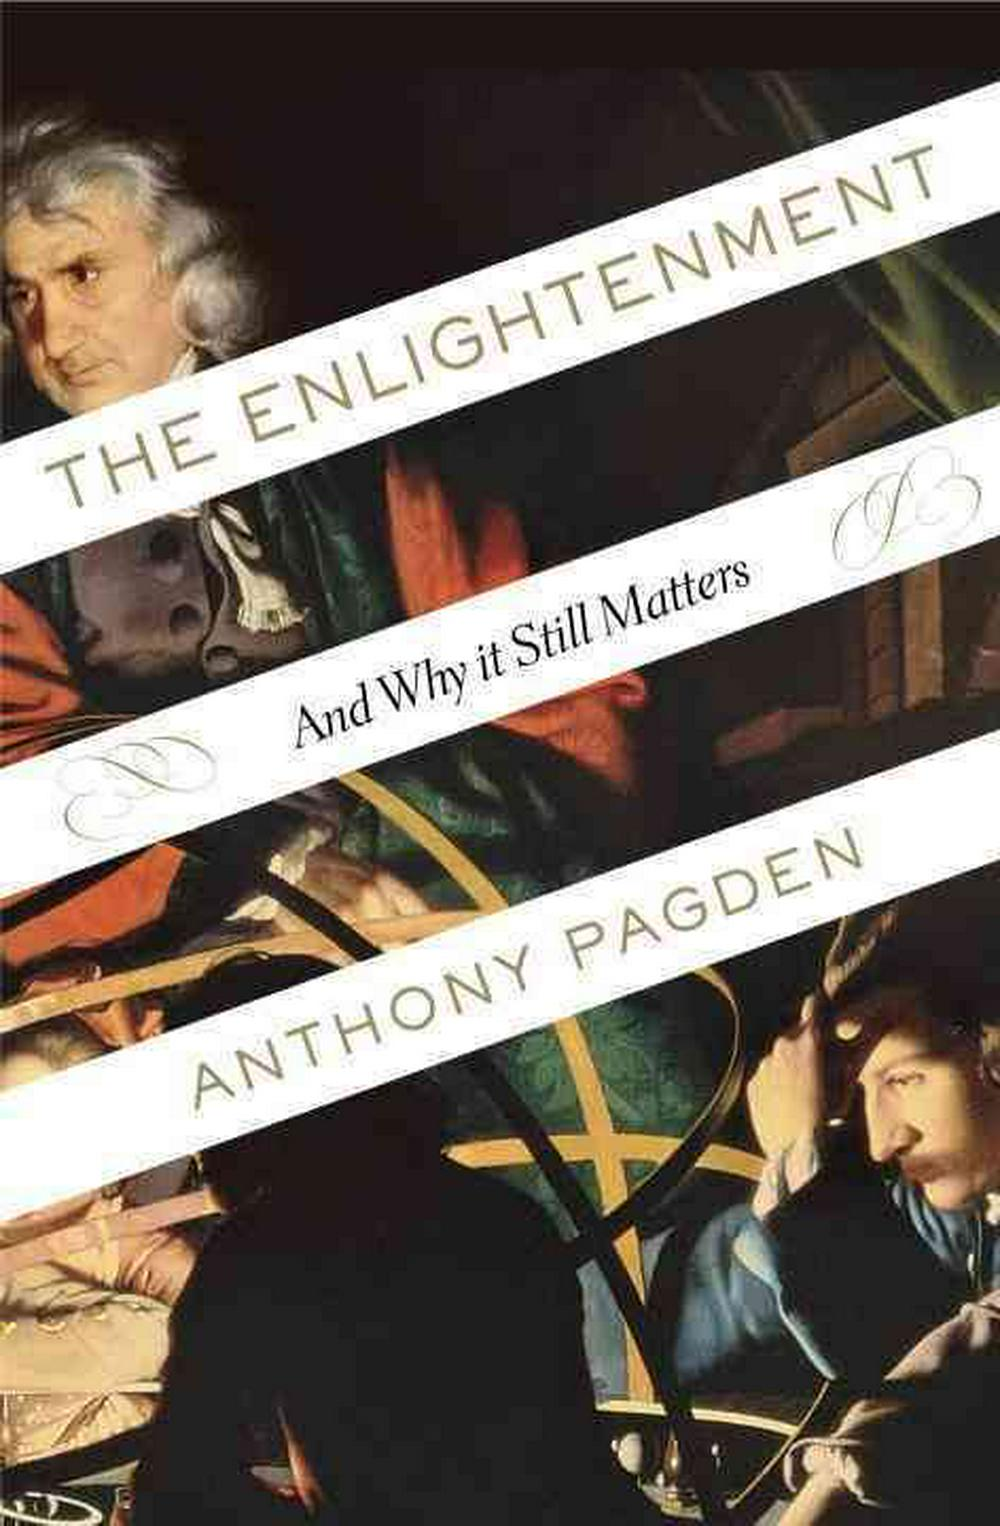 The Enlightenment by Anthony Pagden, ISBN: 9781400060689